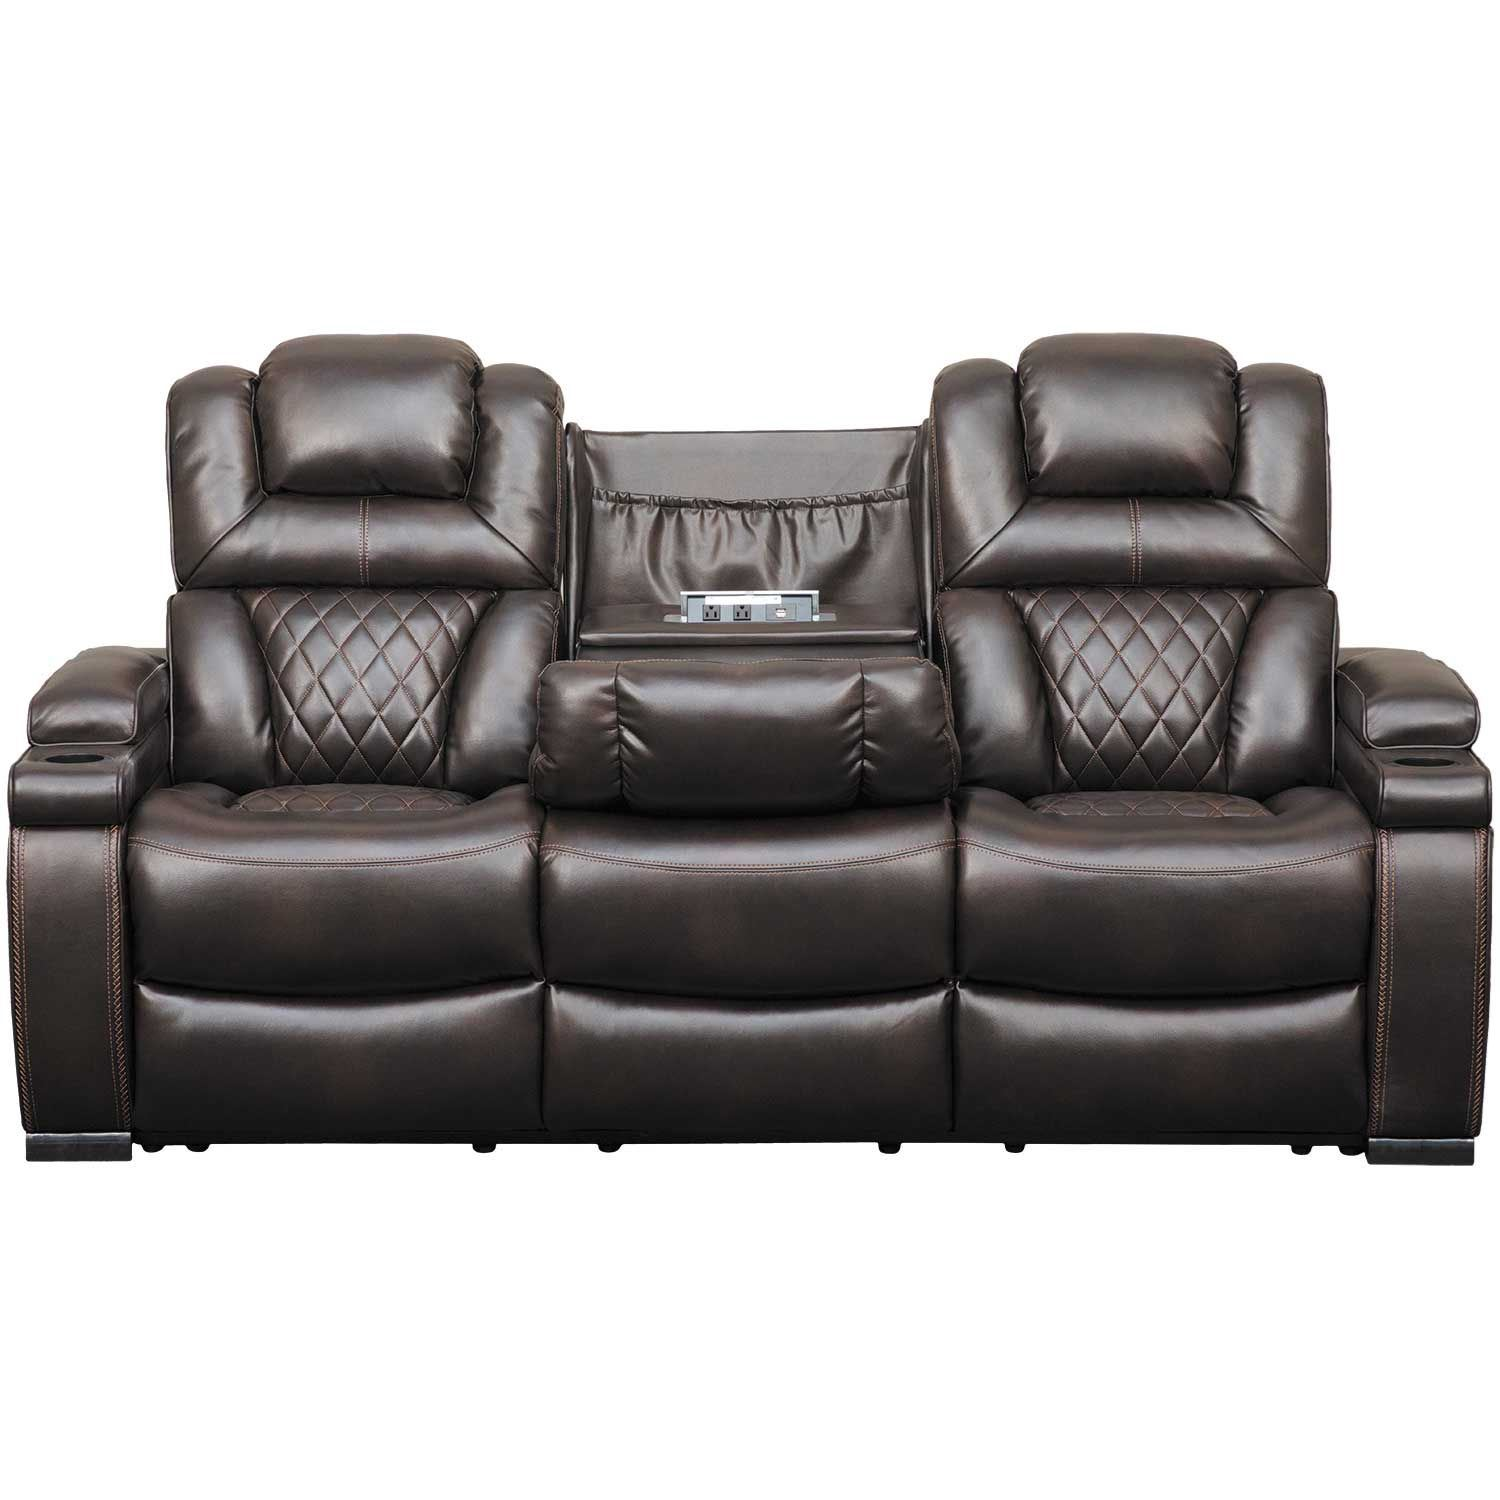 Warnerton Power Reclining Sofa With Drop Table 7540715 Ashley